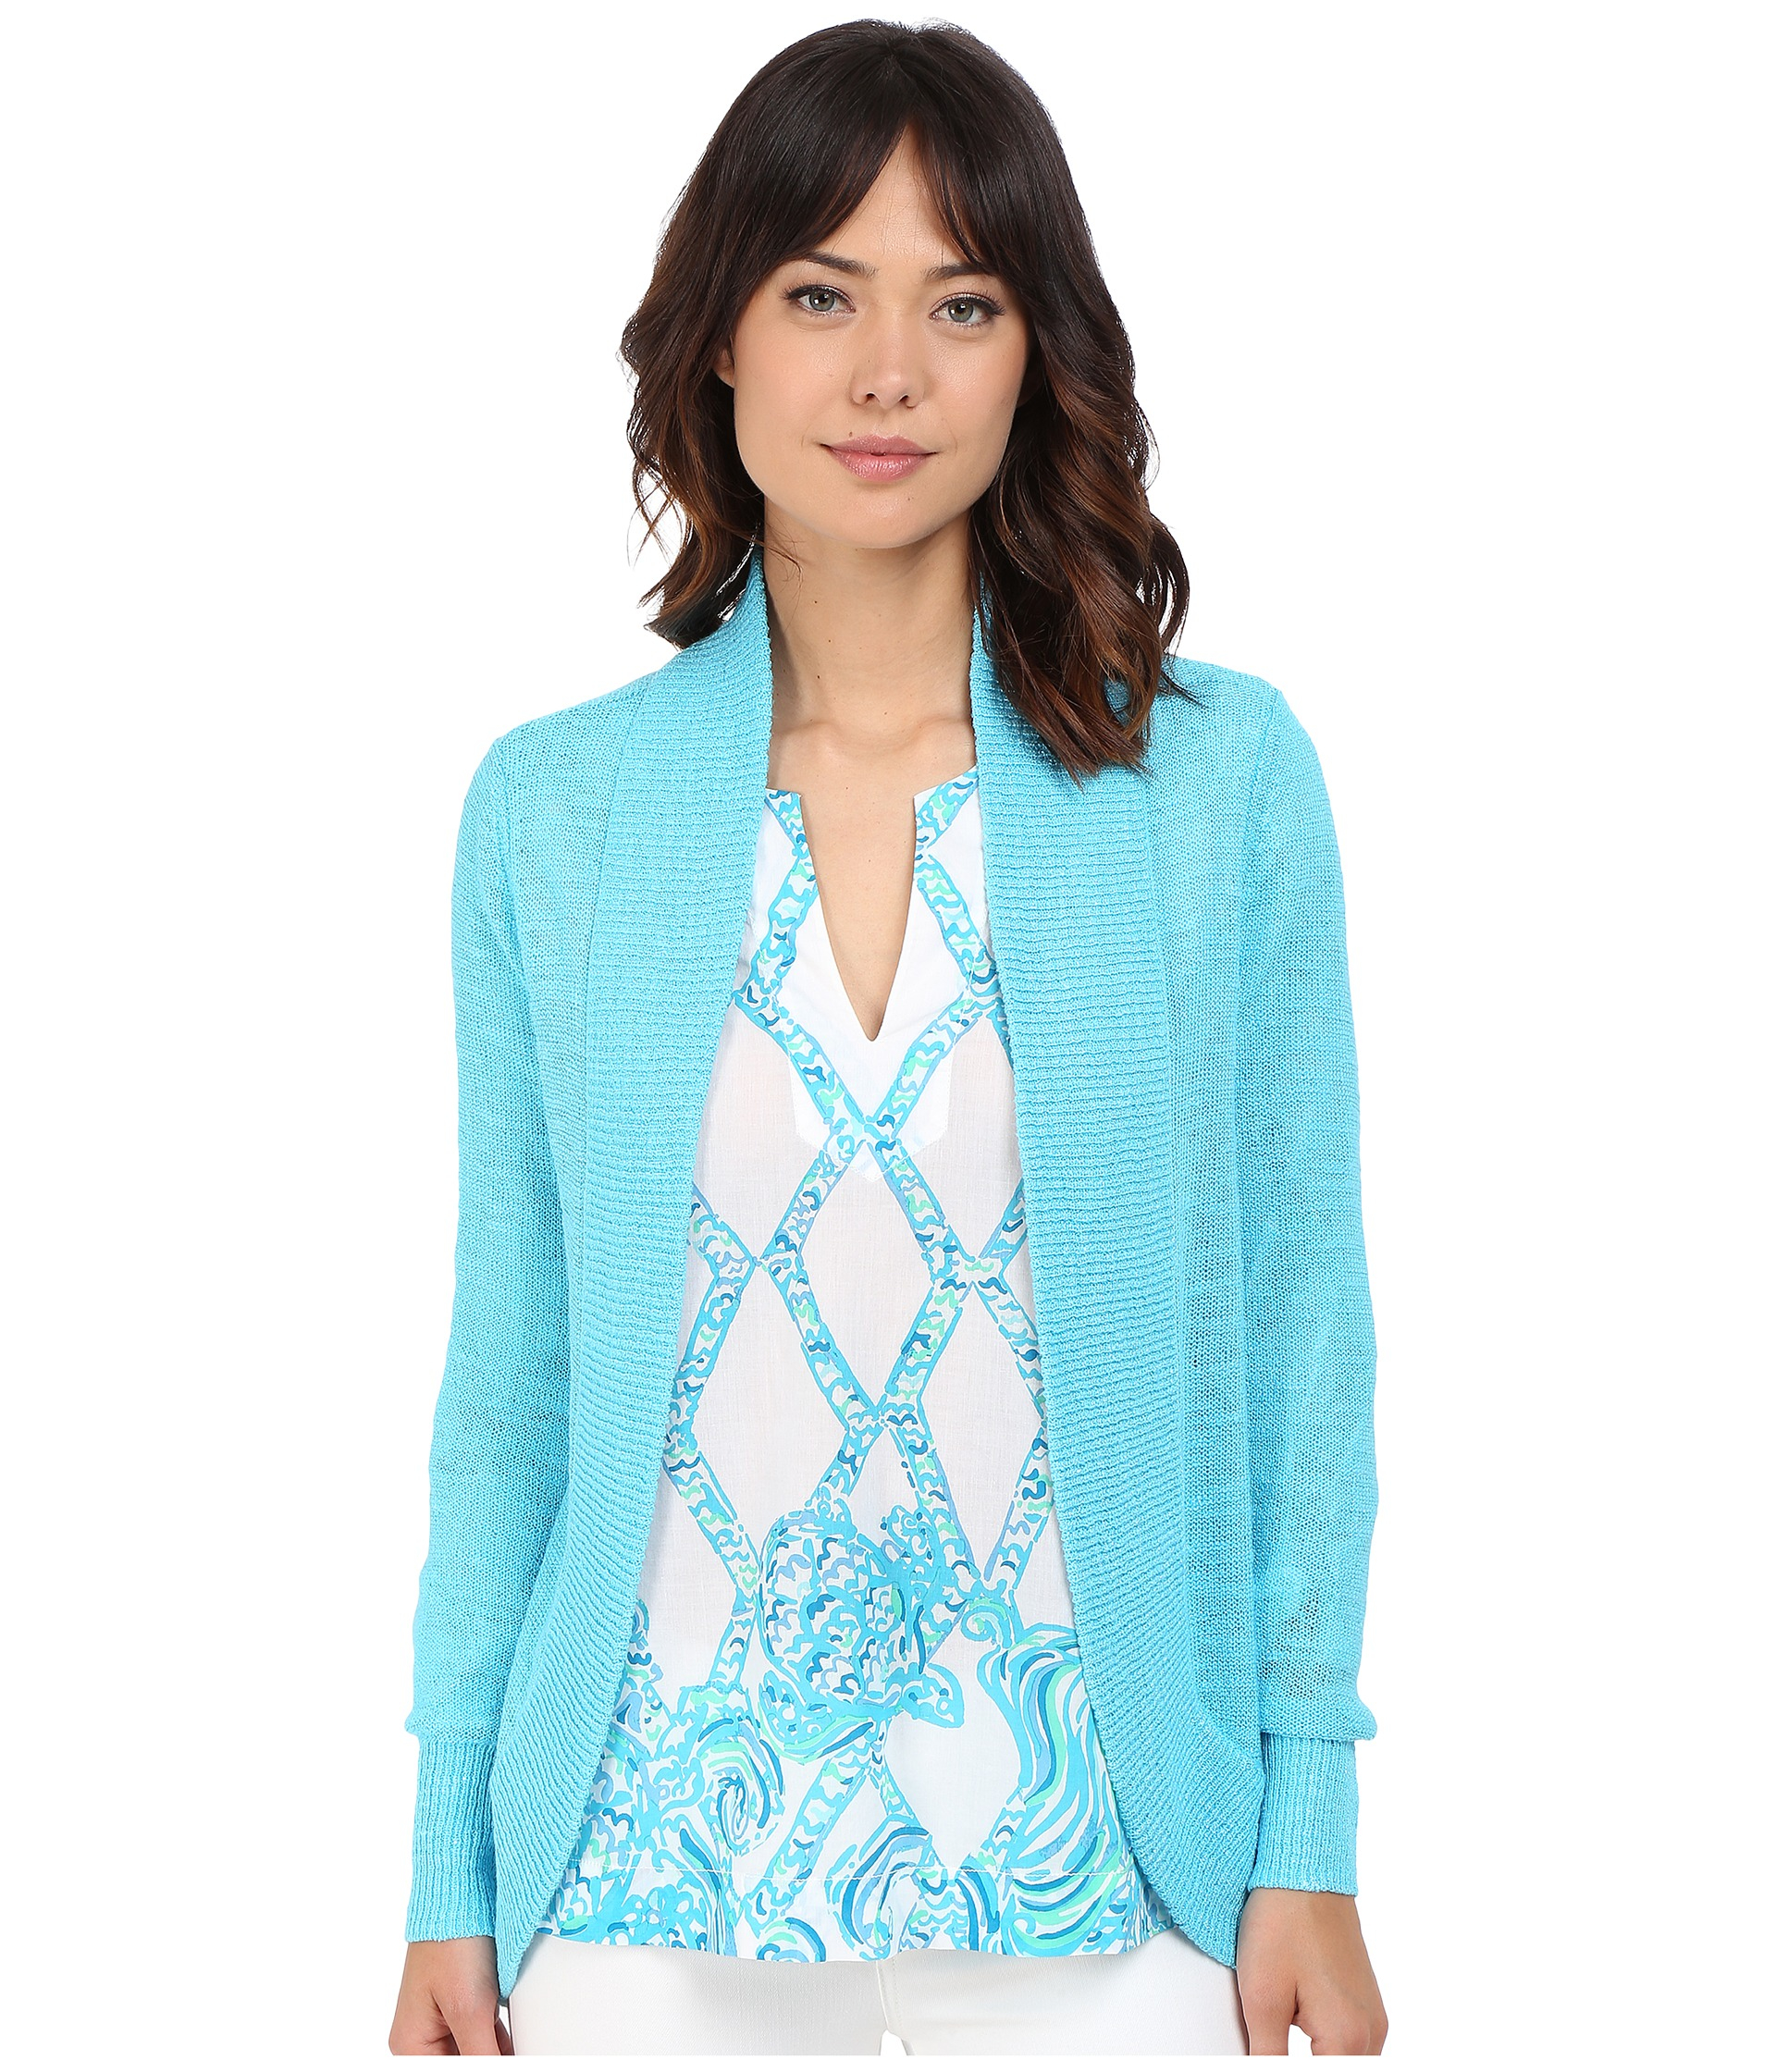 Lyst - Lilly Pulitzer Amalie Cardigan in Blue 3c1e1d84a